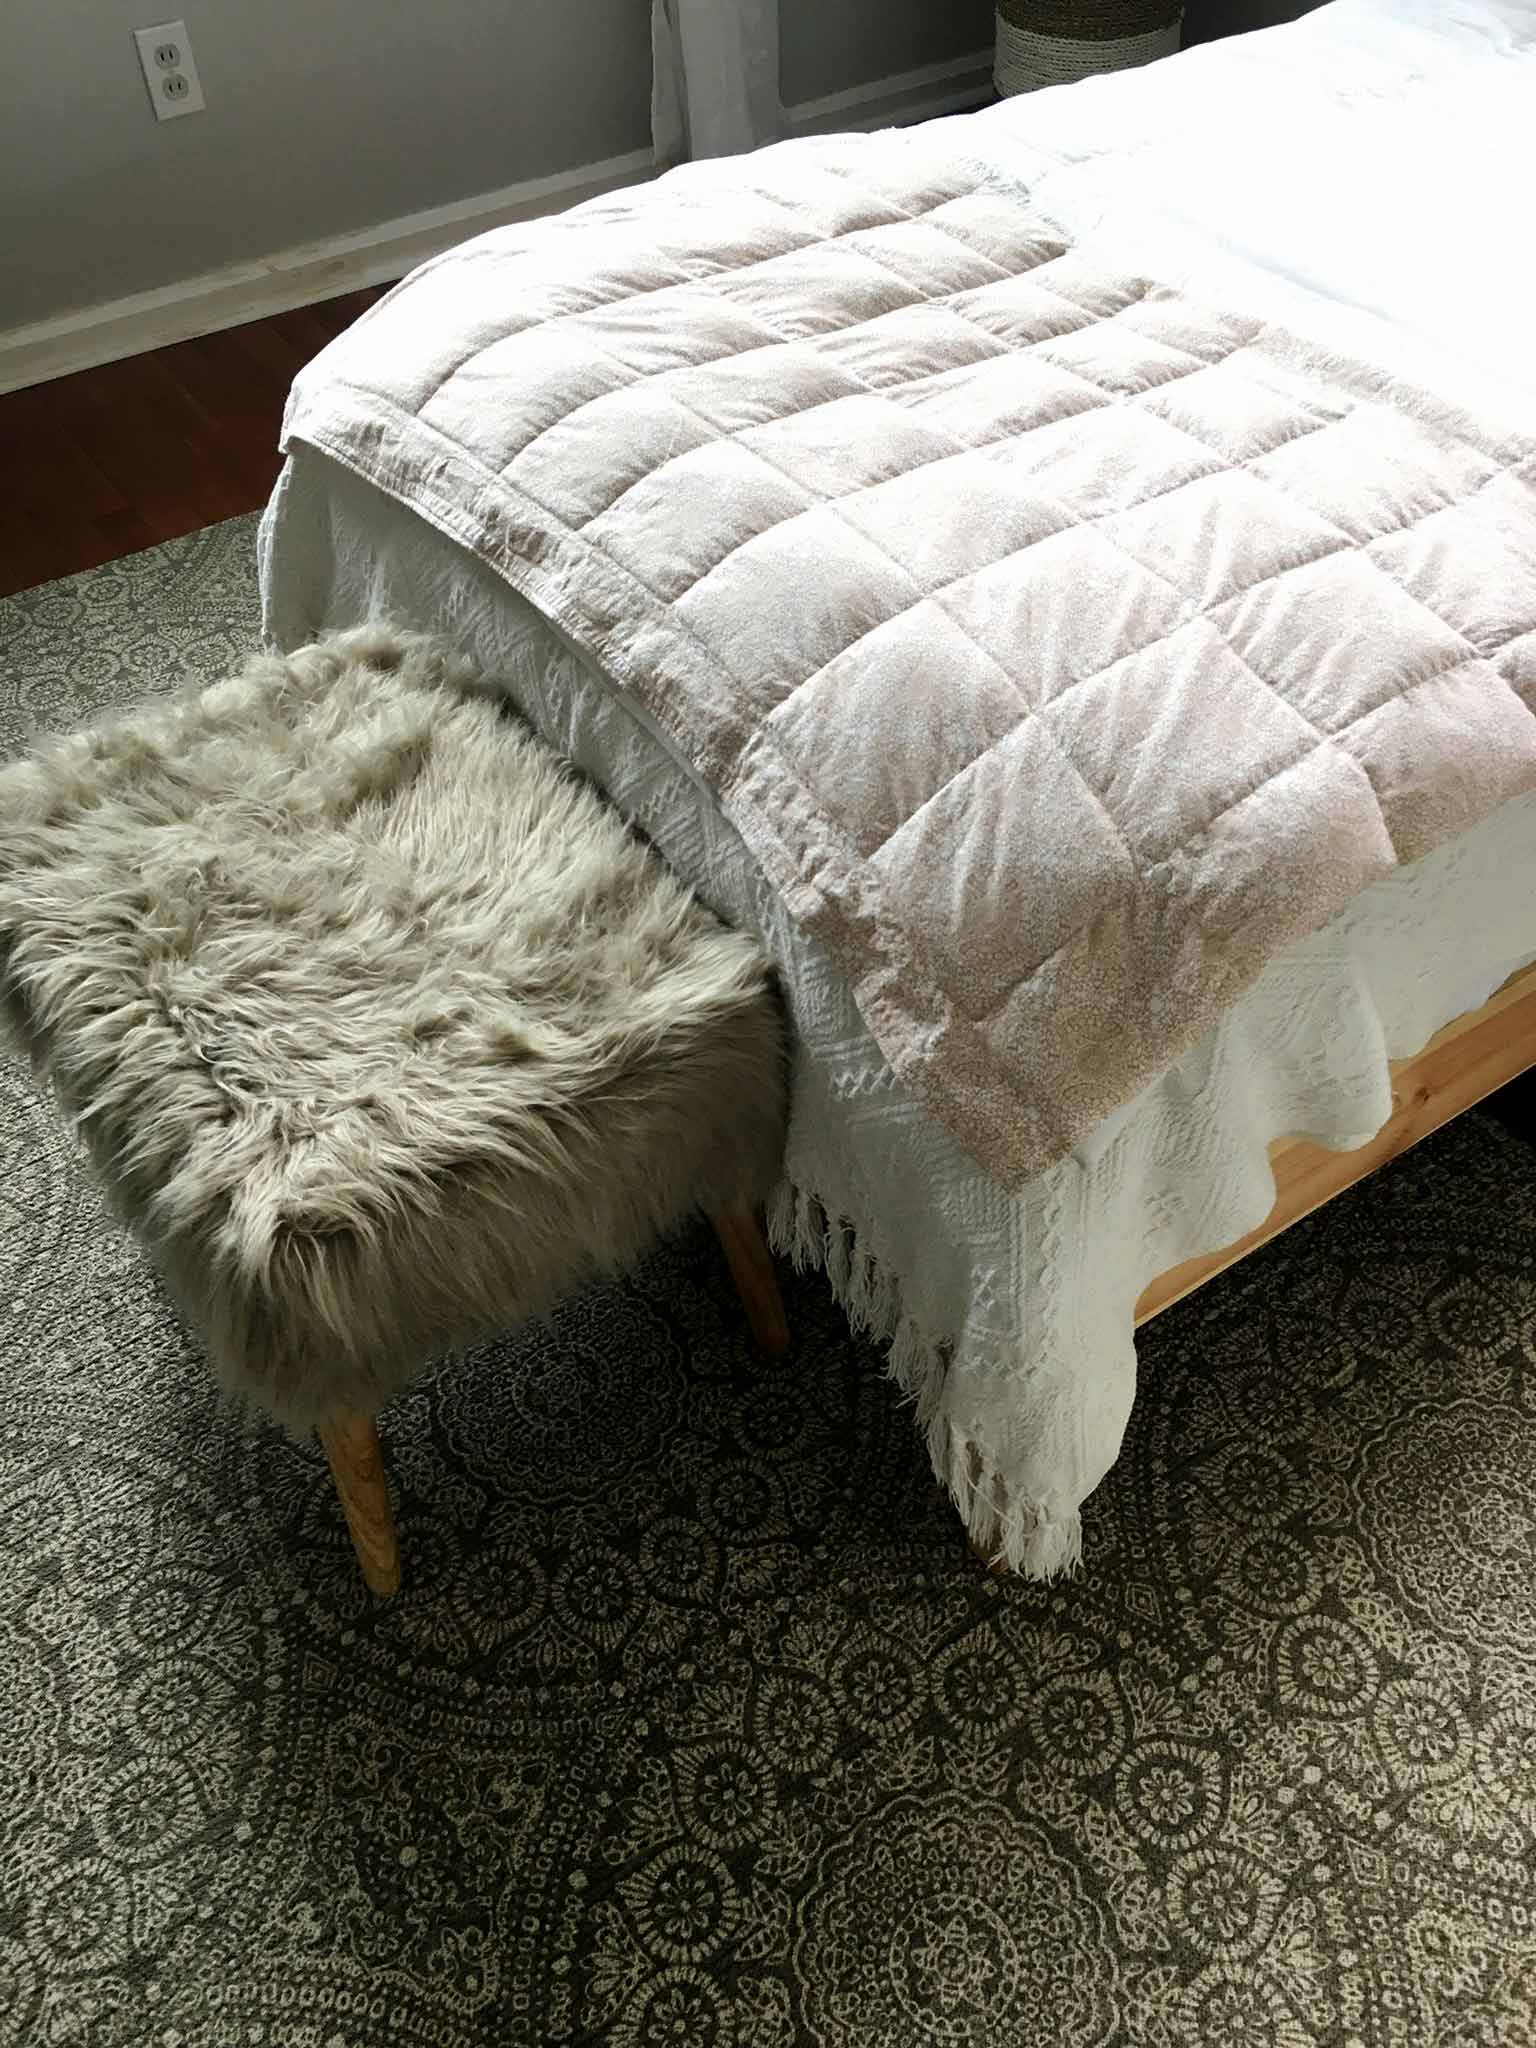 Patterned cotton rug with faux fur stool - modern boho tween bedroom - That Homebird Life Blog